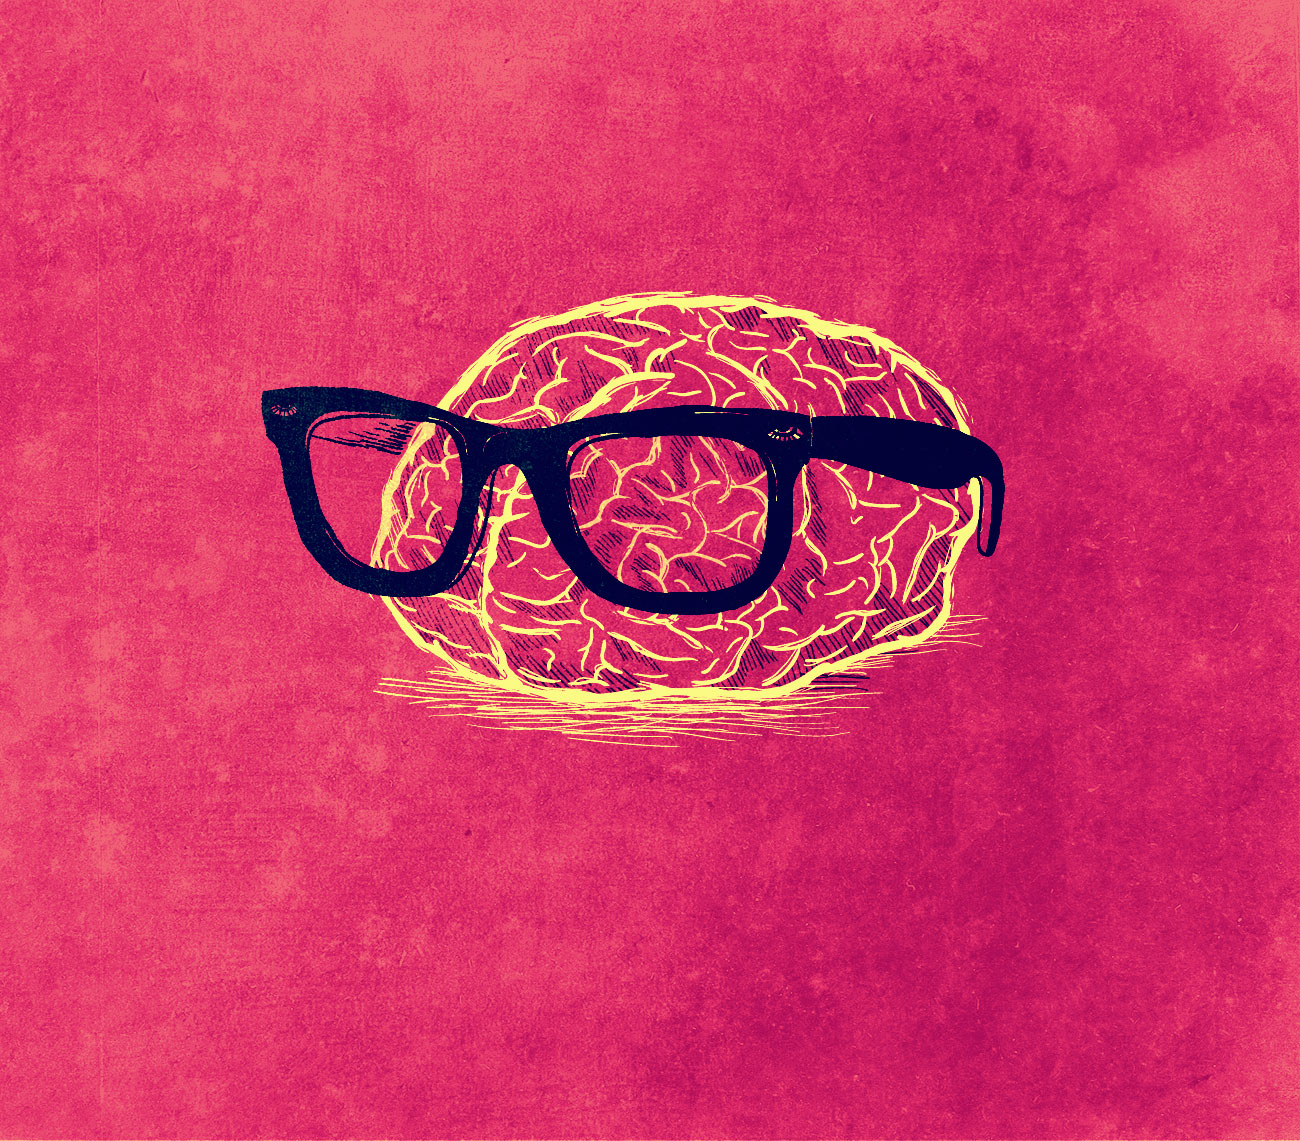 brain pattern wallpaper - photo #27